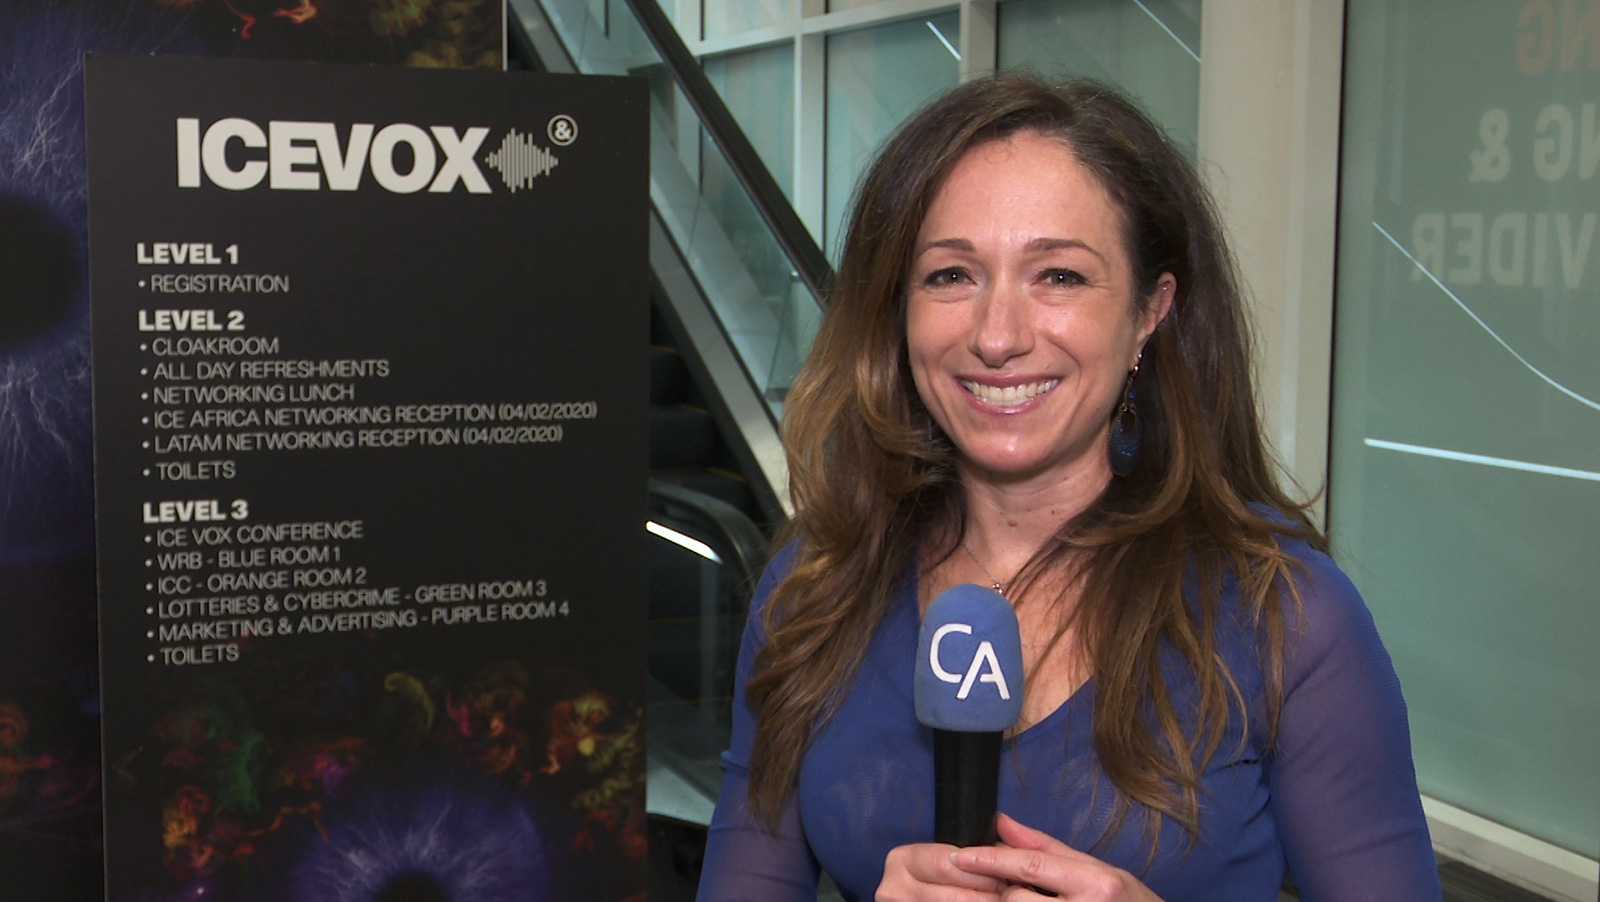 London Conference Week 2020 Day 1 recap: ICE VOX